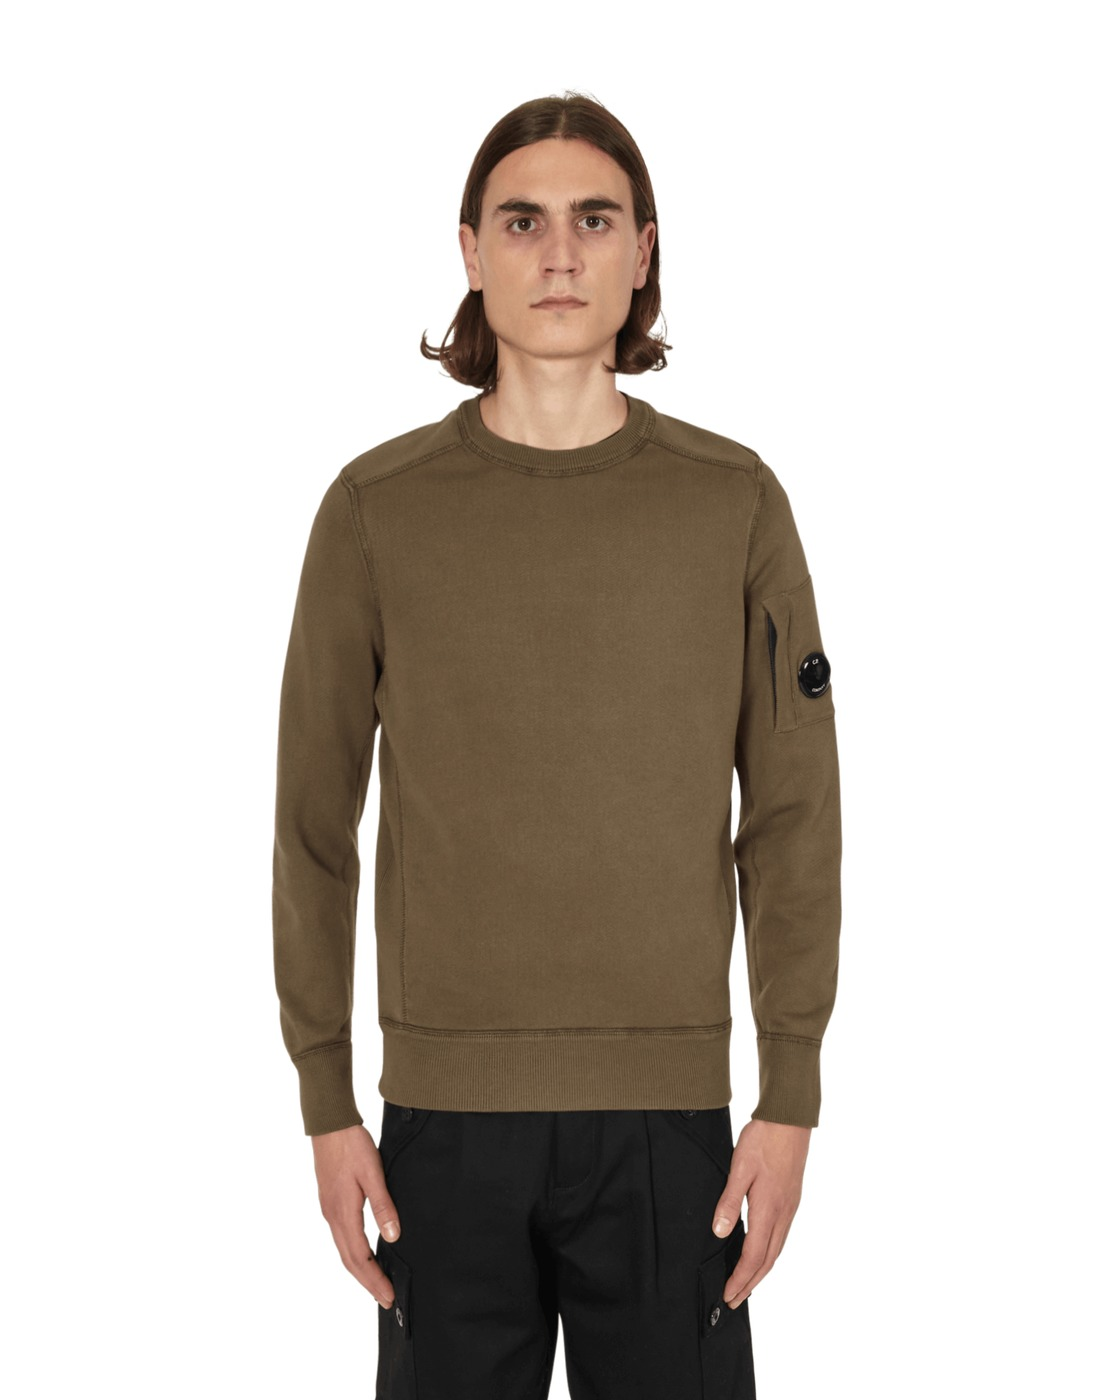 C.P. Company Garment Dyed Fleece Lens Crewneck Sweatshirt Ivy Green